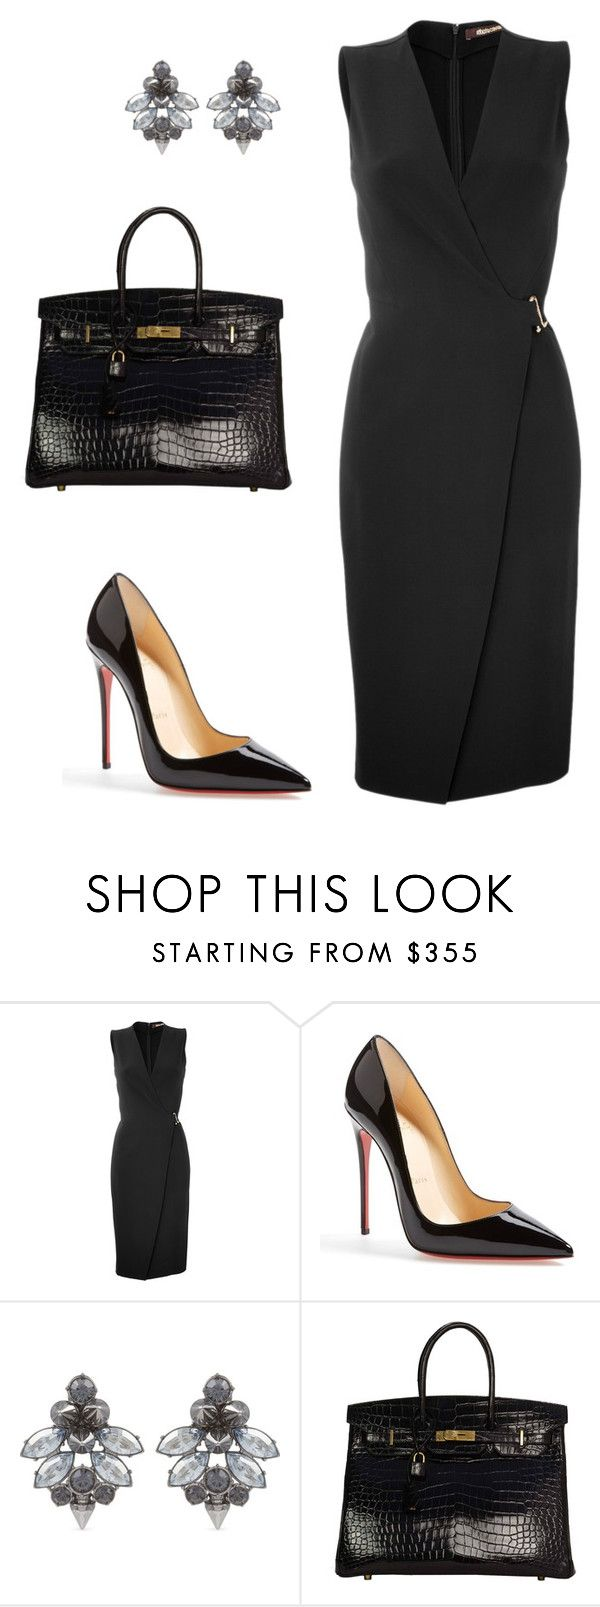 style theory by Helia by heliaamado on Polyvore featuring Roberto Cavalli, Christian Louboutin, Hermès and Mawi